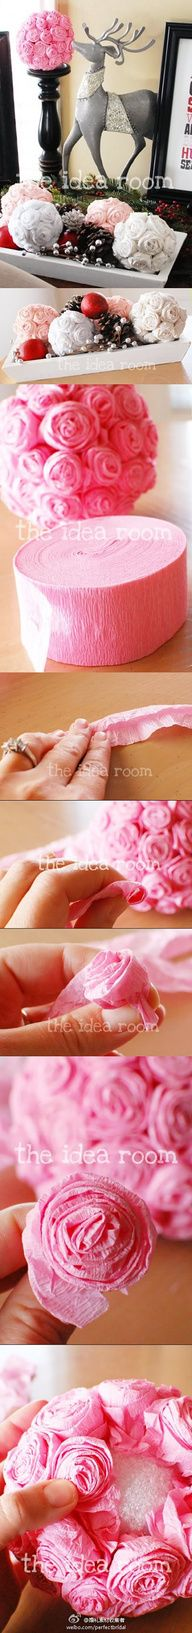 Crepe paper rolled flower-covered balls.